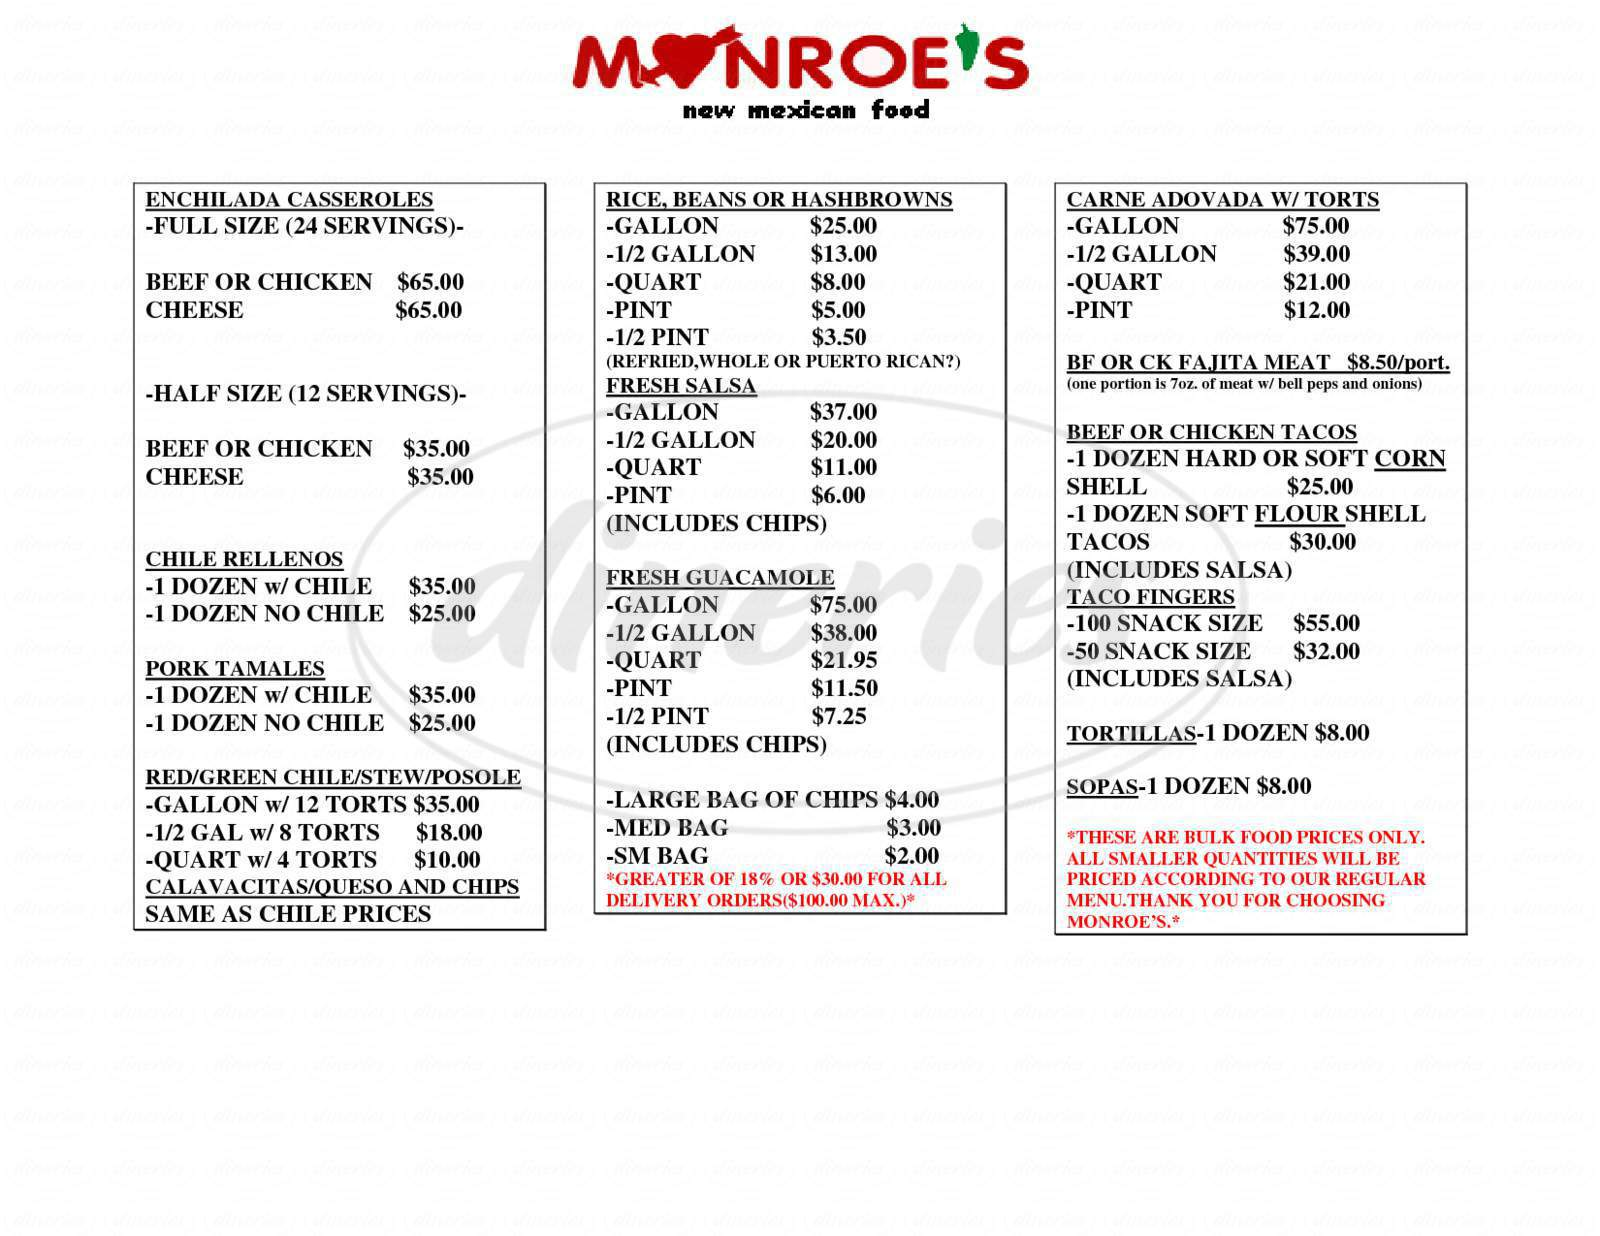 menu for Monroe's Restaurant